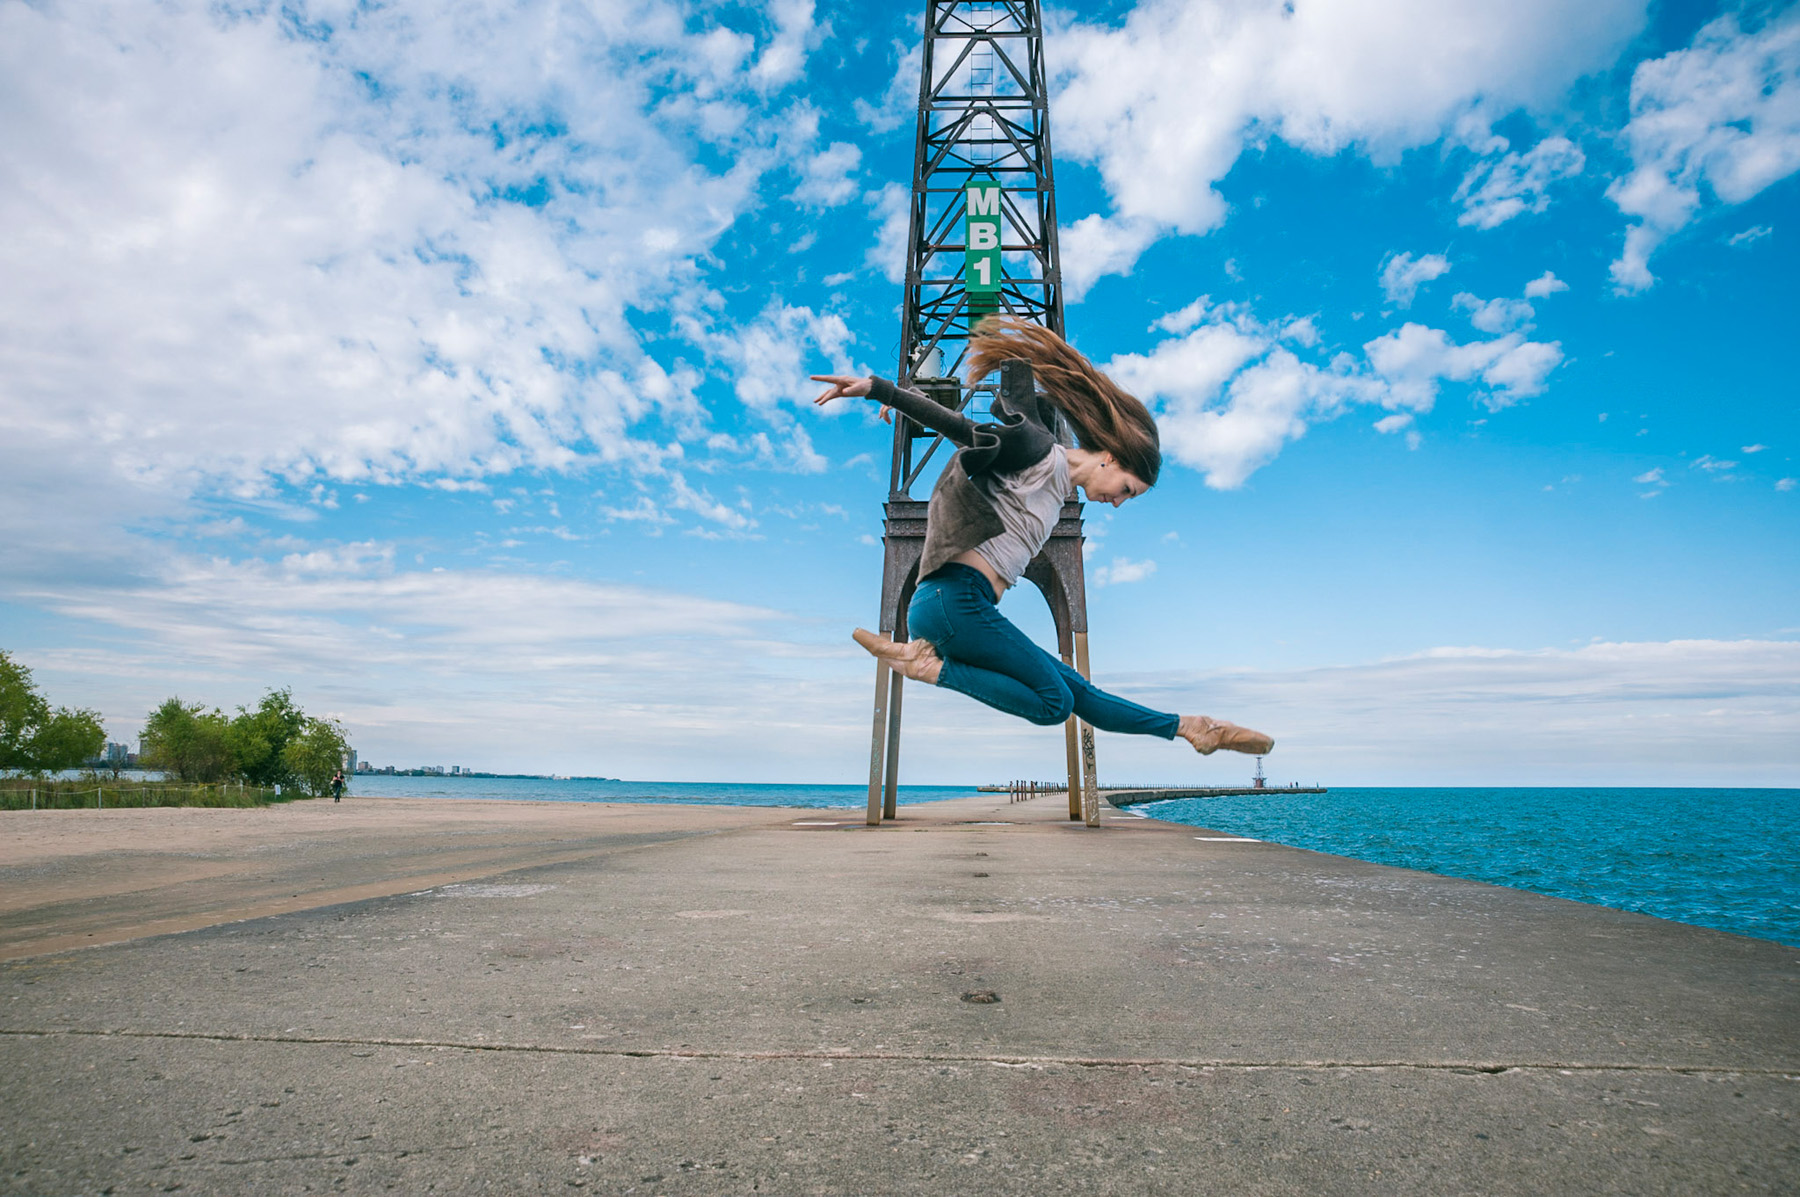 photo of dancer Elizabeth Cohen in mid air on a dock in Chicago with a beautifully blue cloudy sky and a tower in the background